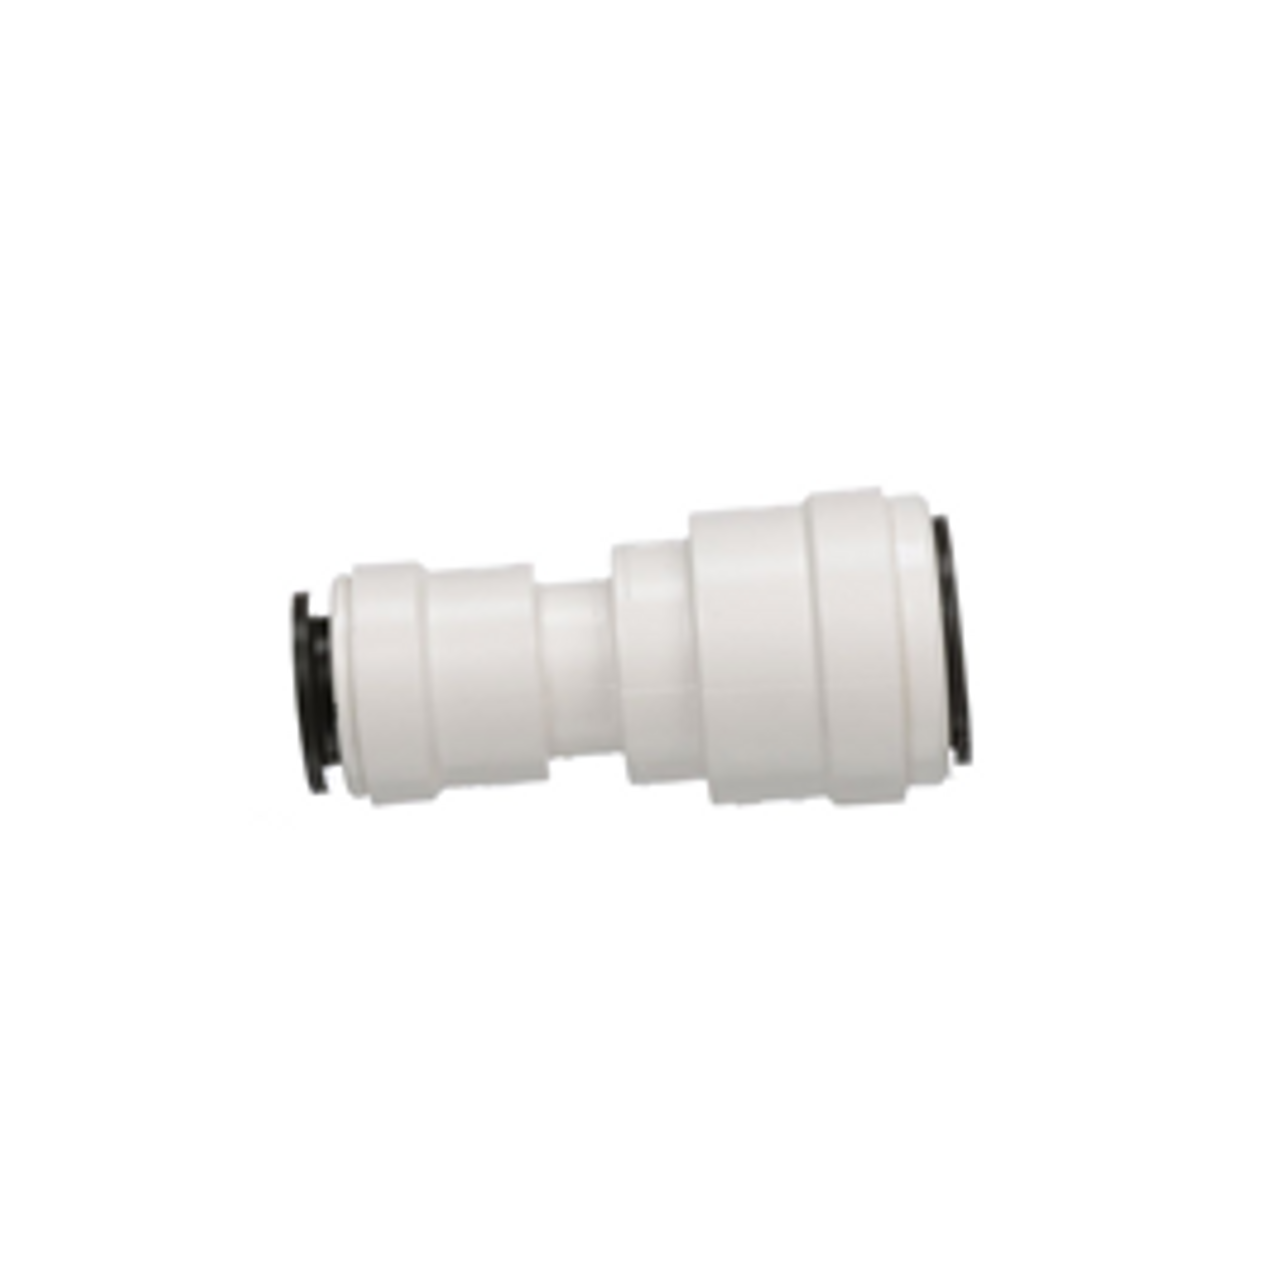 """½"""" CTS x 3/8"""" CTS reducing union connector 3515R-1008"""